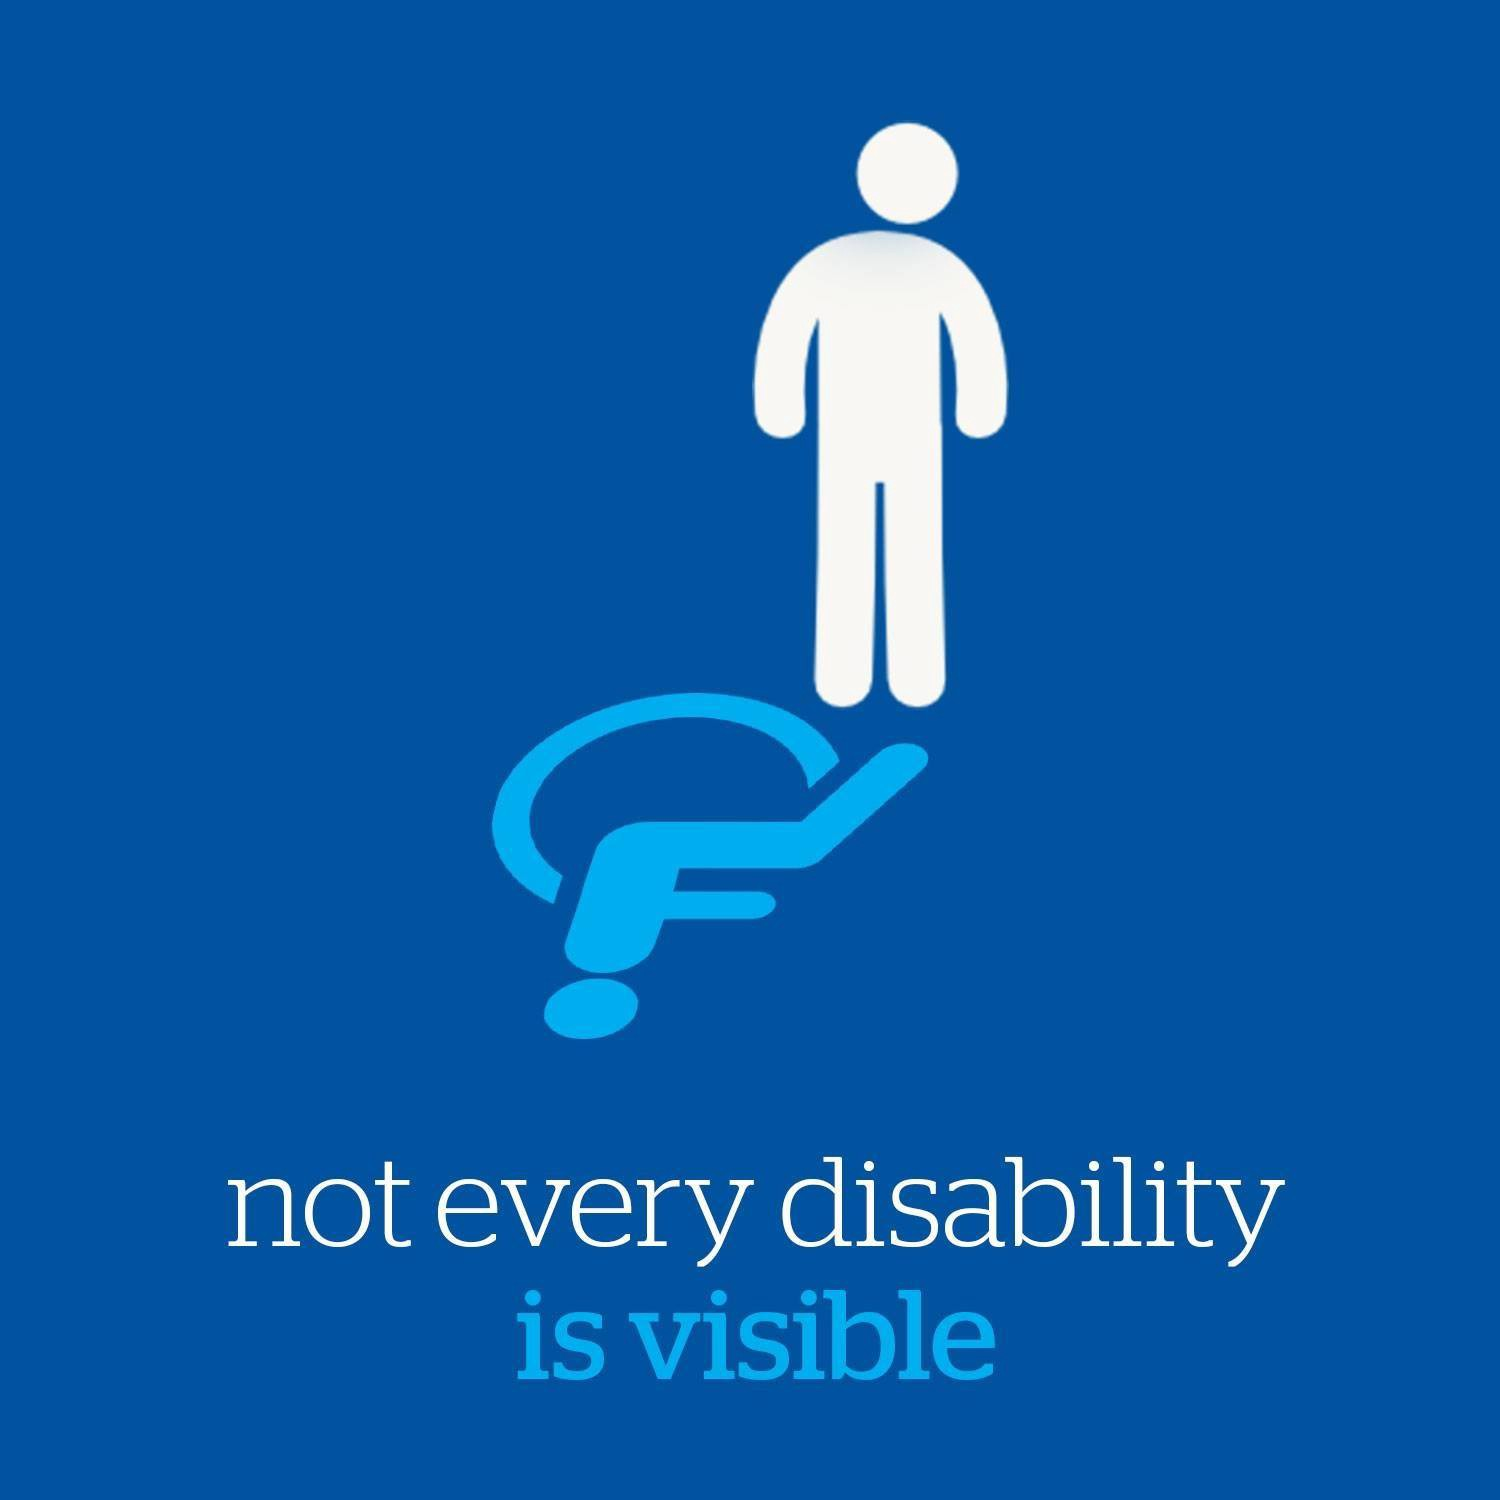 """Not every disability is visible"". white stick figure with pale blue wheelchair symbol shadow; blue background."